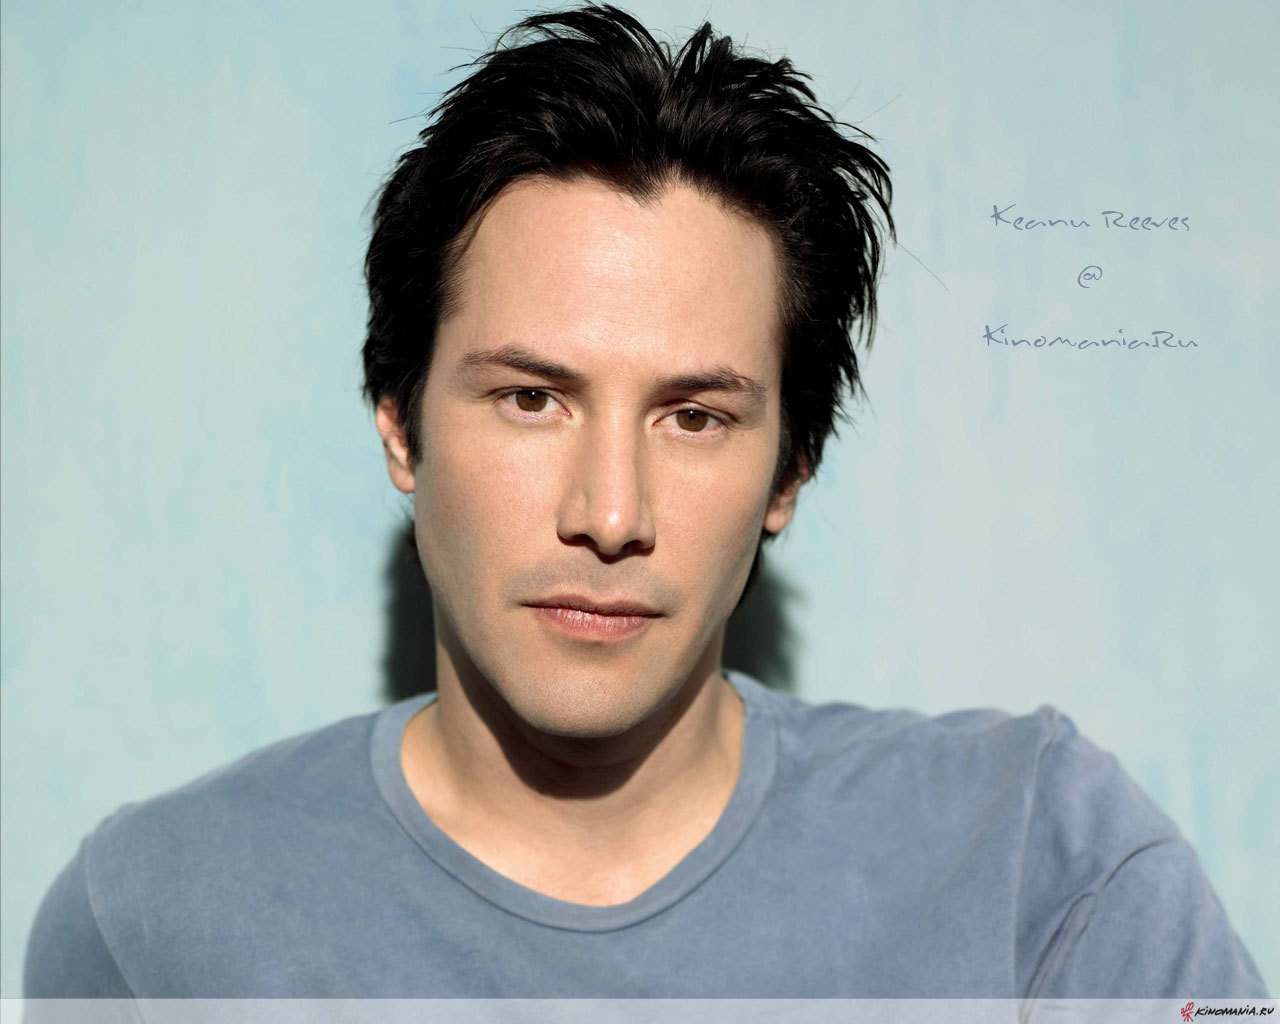 Keanu Reeves Keanu Reeves Wallpaper 9231631 Fanpop